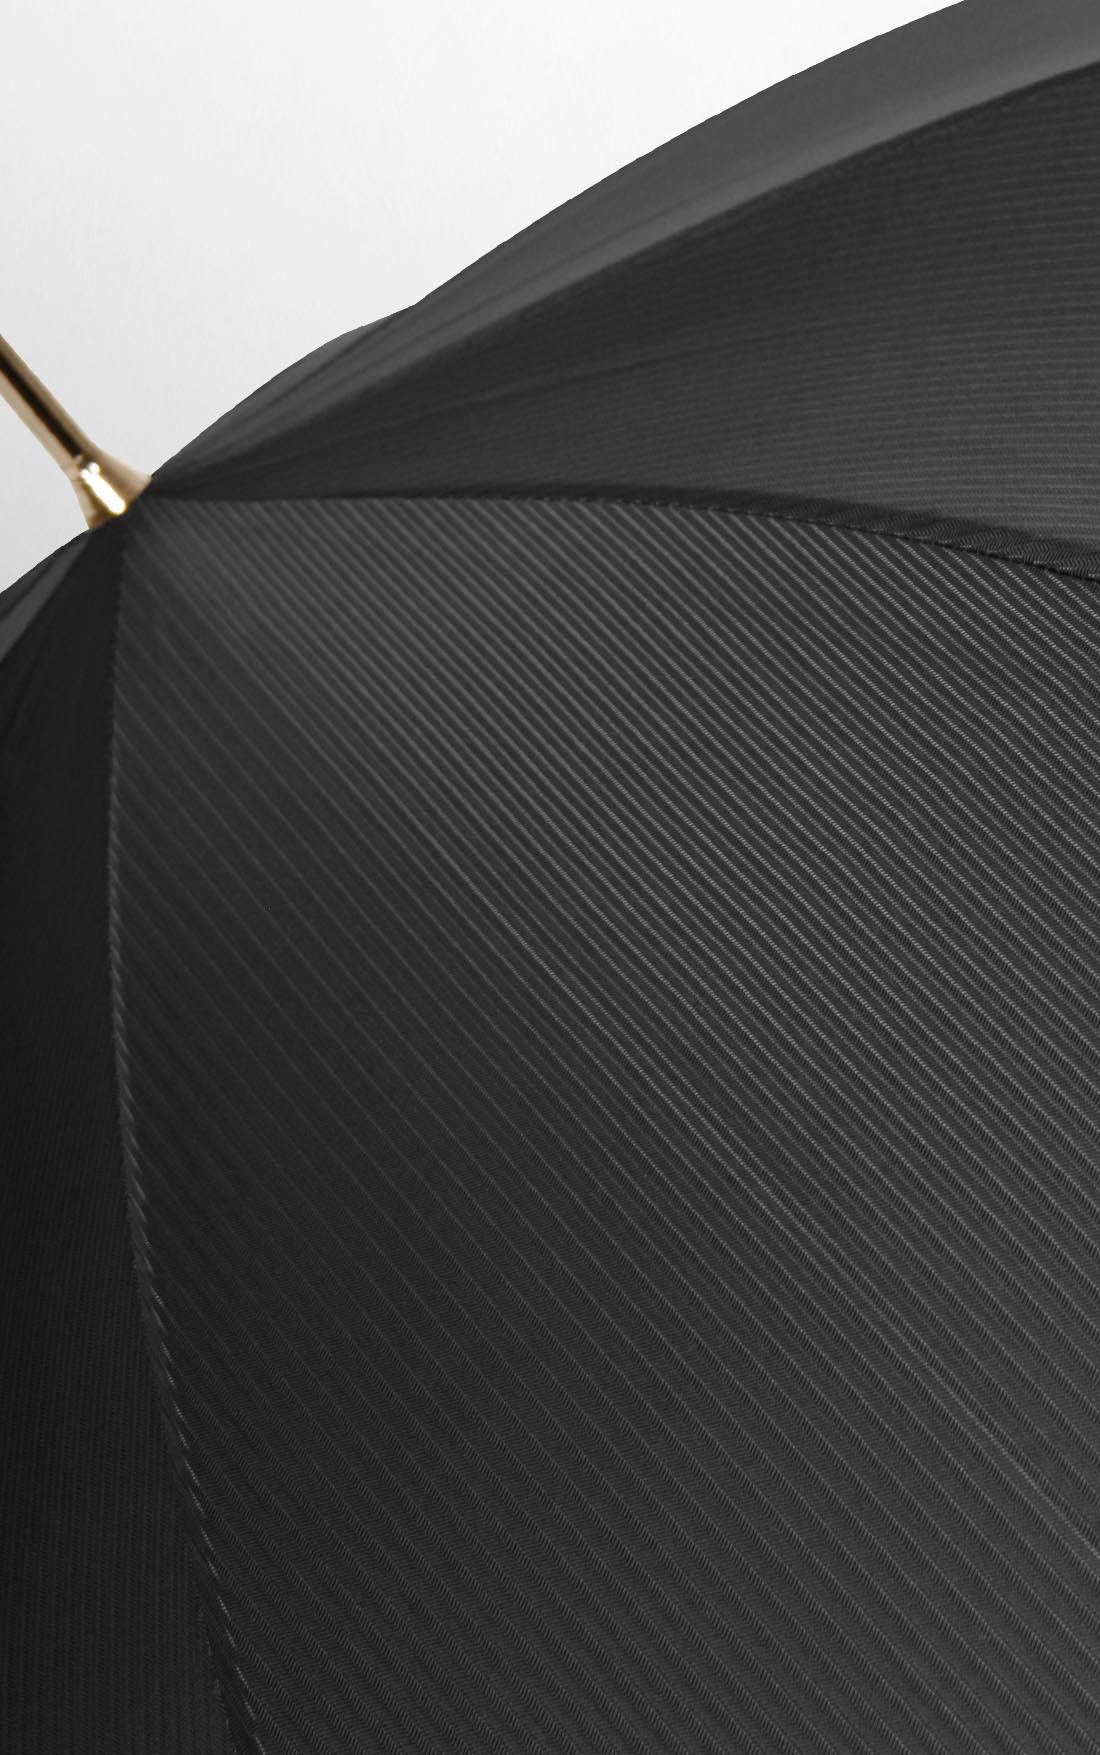 Pasotti - Gorilla Umbrella (478-RASO6768/1-K43OPACO-NICKEL)